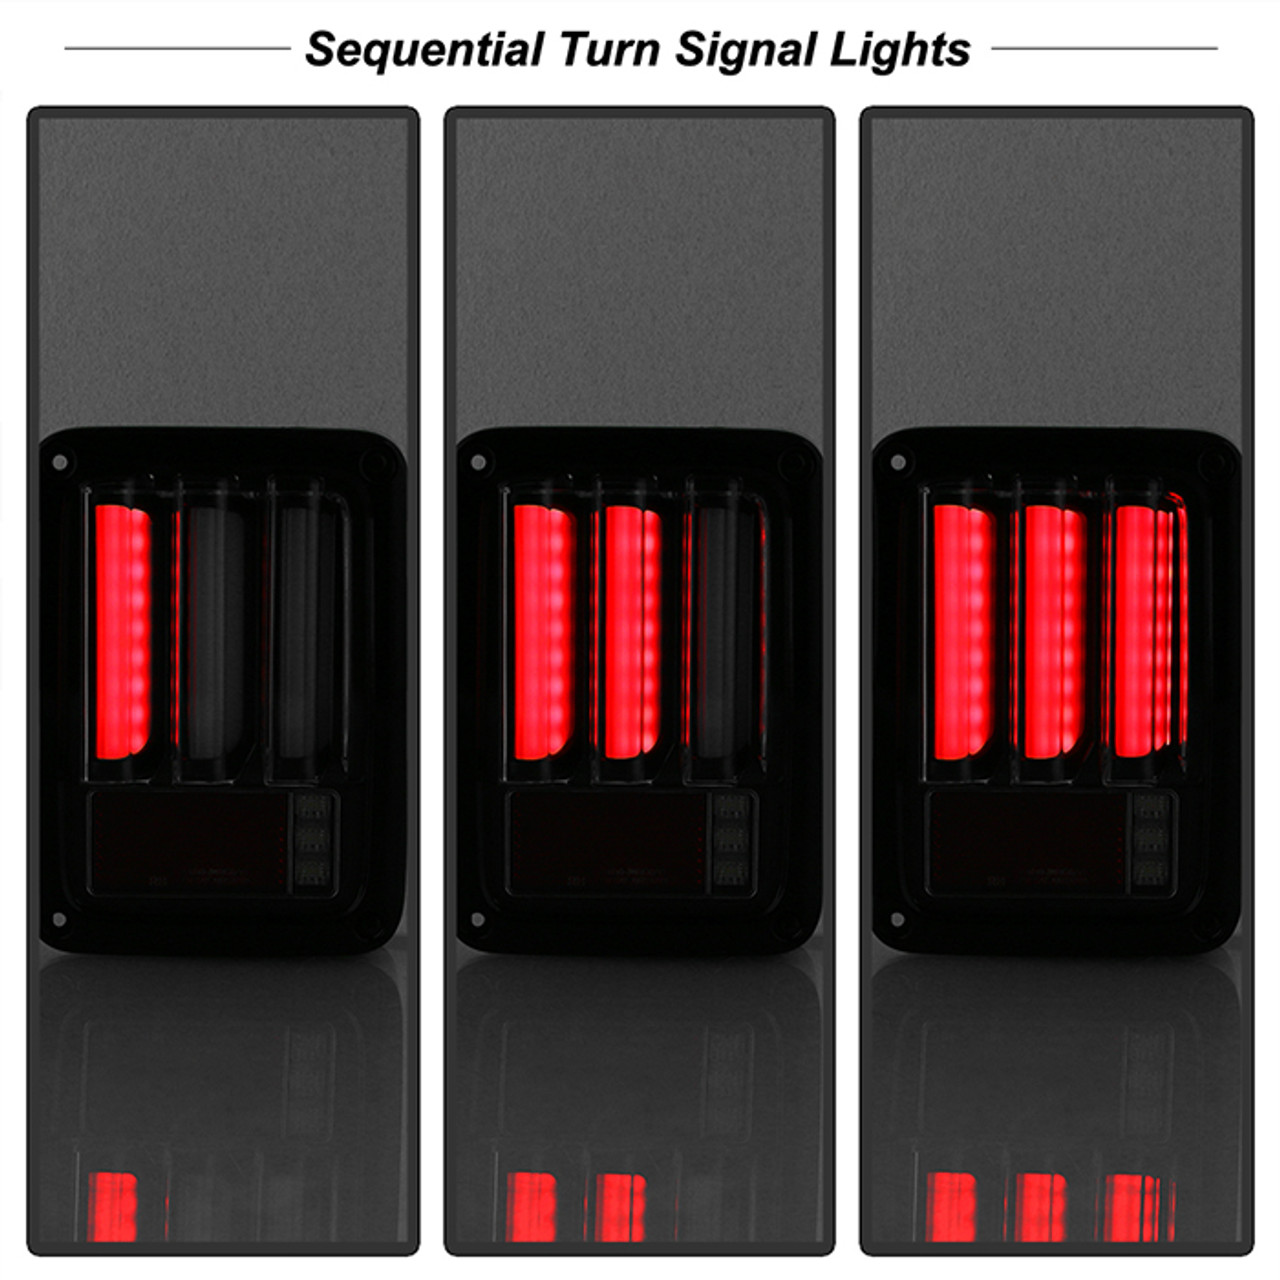 Jeep Wrangler (JK JKU) 07-18 Light Bar Sequential Turn Signal LED Tail Lights - Black.